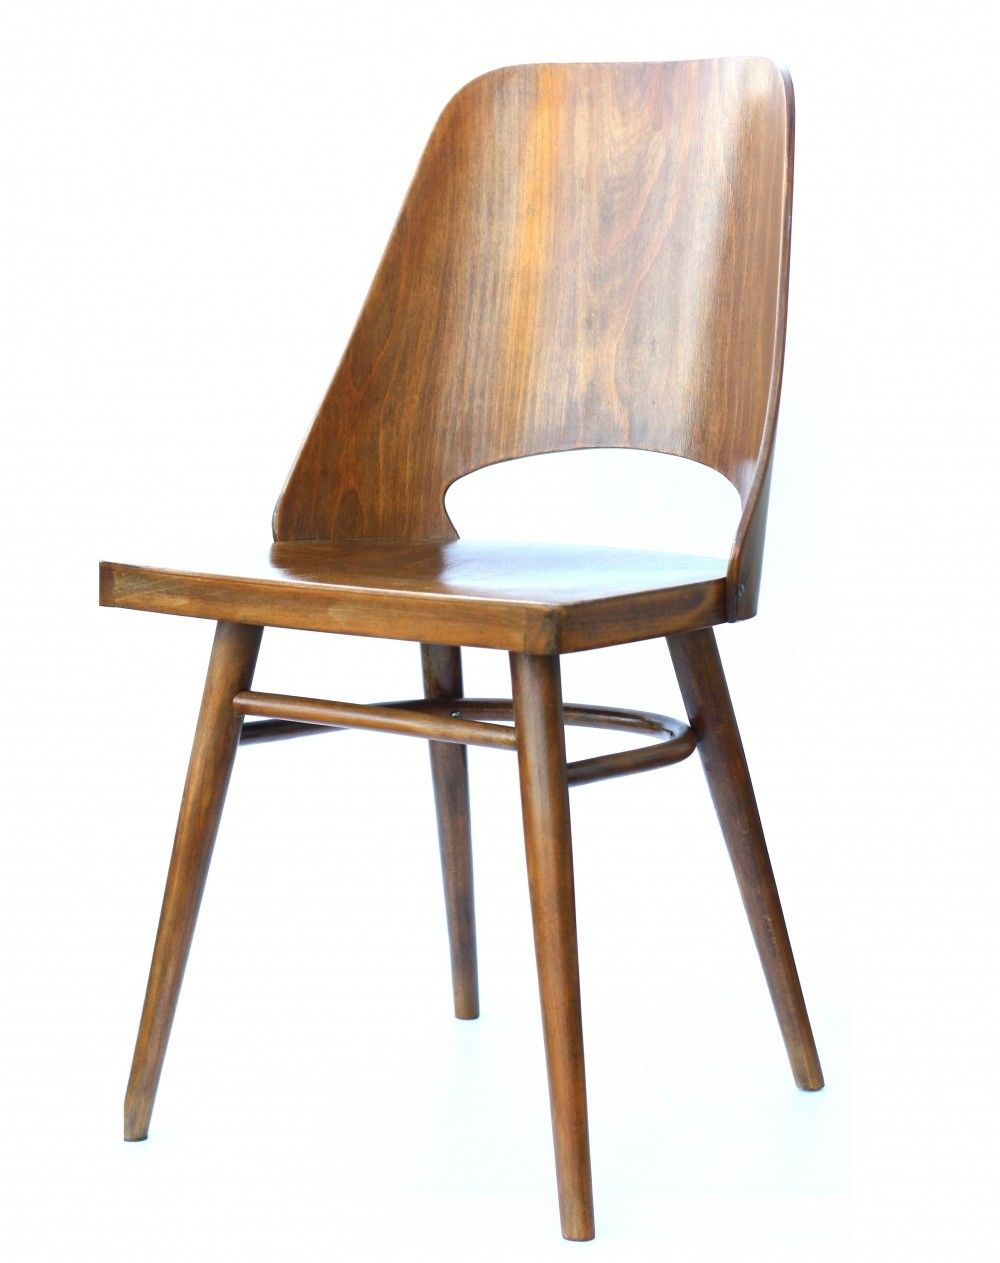 Tremendous 2 Model 514 Dinner Chairs From The Sixties By Unknown Lamtechconsult Wood Chair Design Ideas Lamtechconsultcom